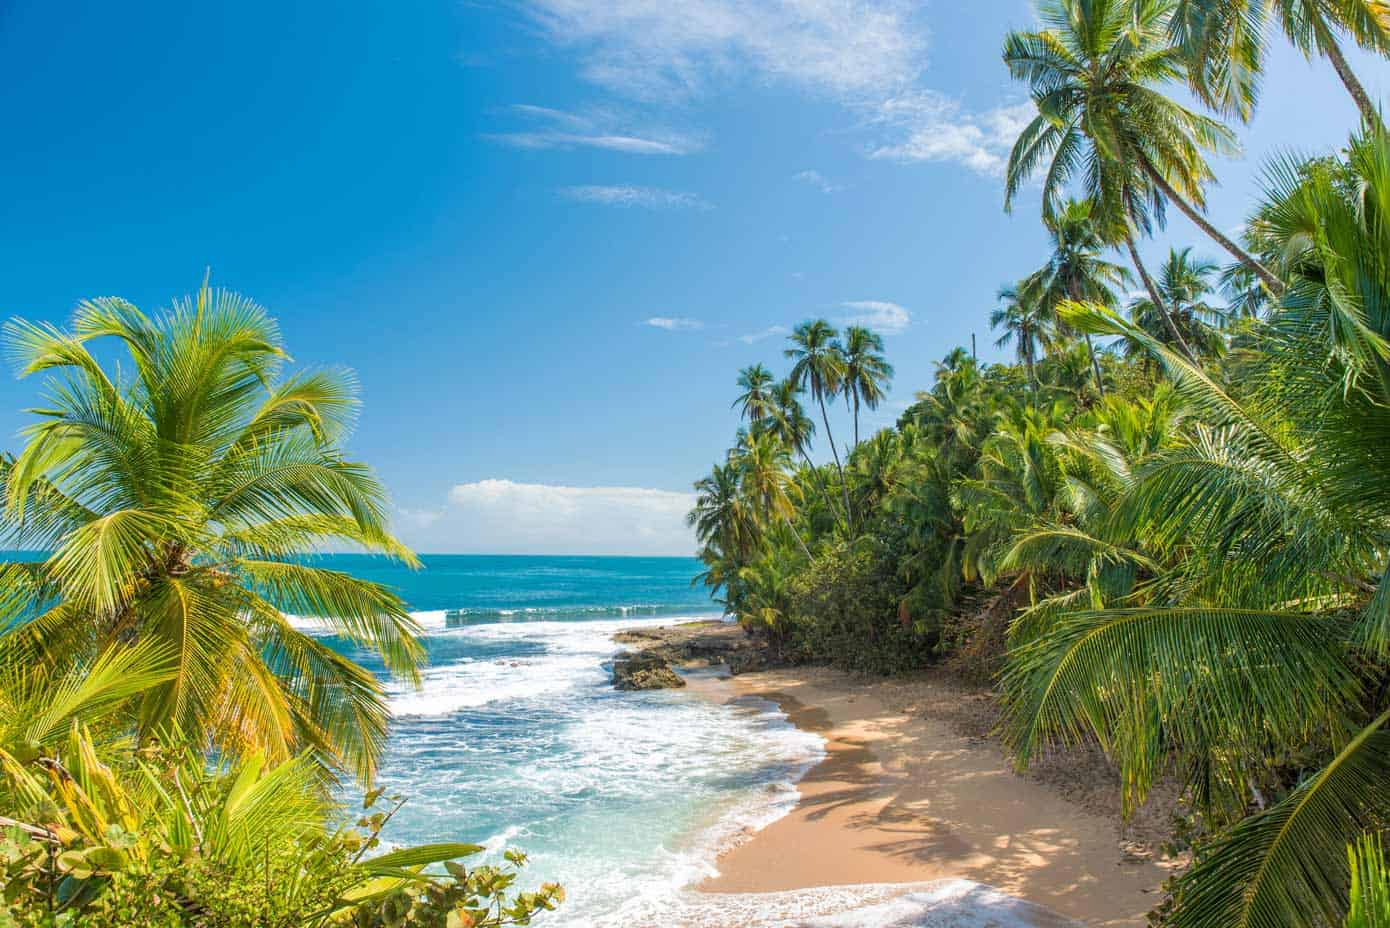 Palm tree lined tropical beach with sparkling water on a sunny day.